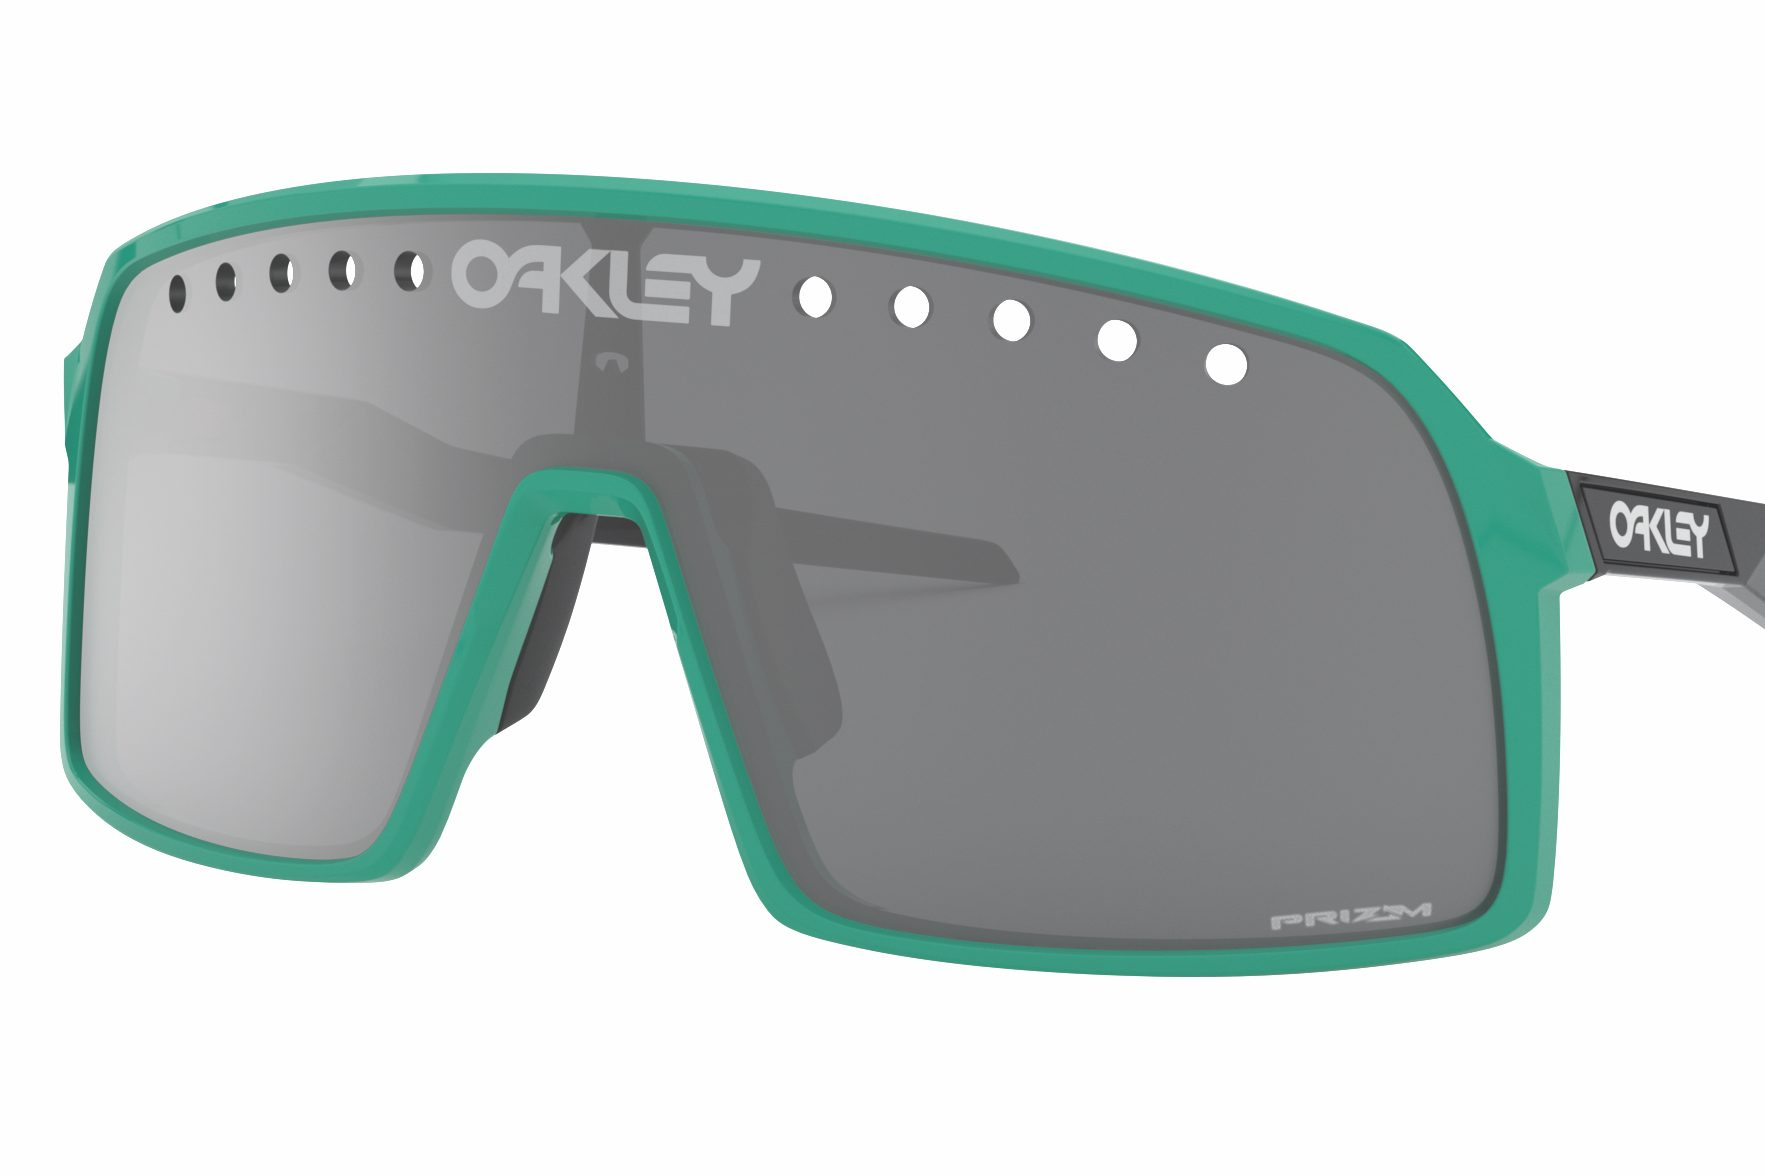 Oakley launches limited edition Sutro glasses ahead of summer Olympics